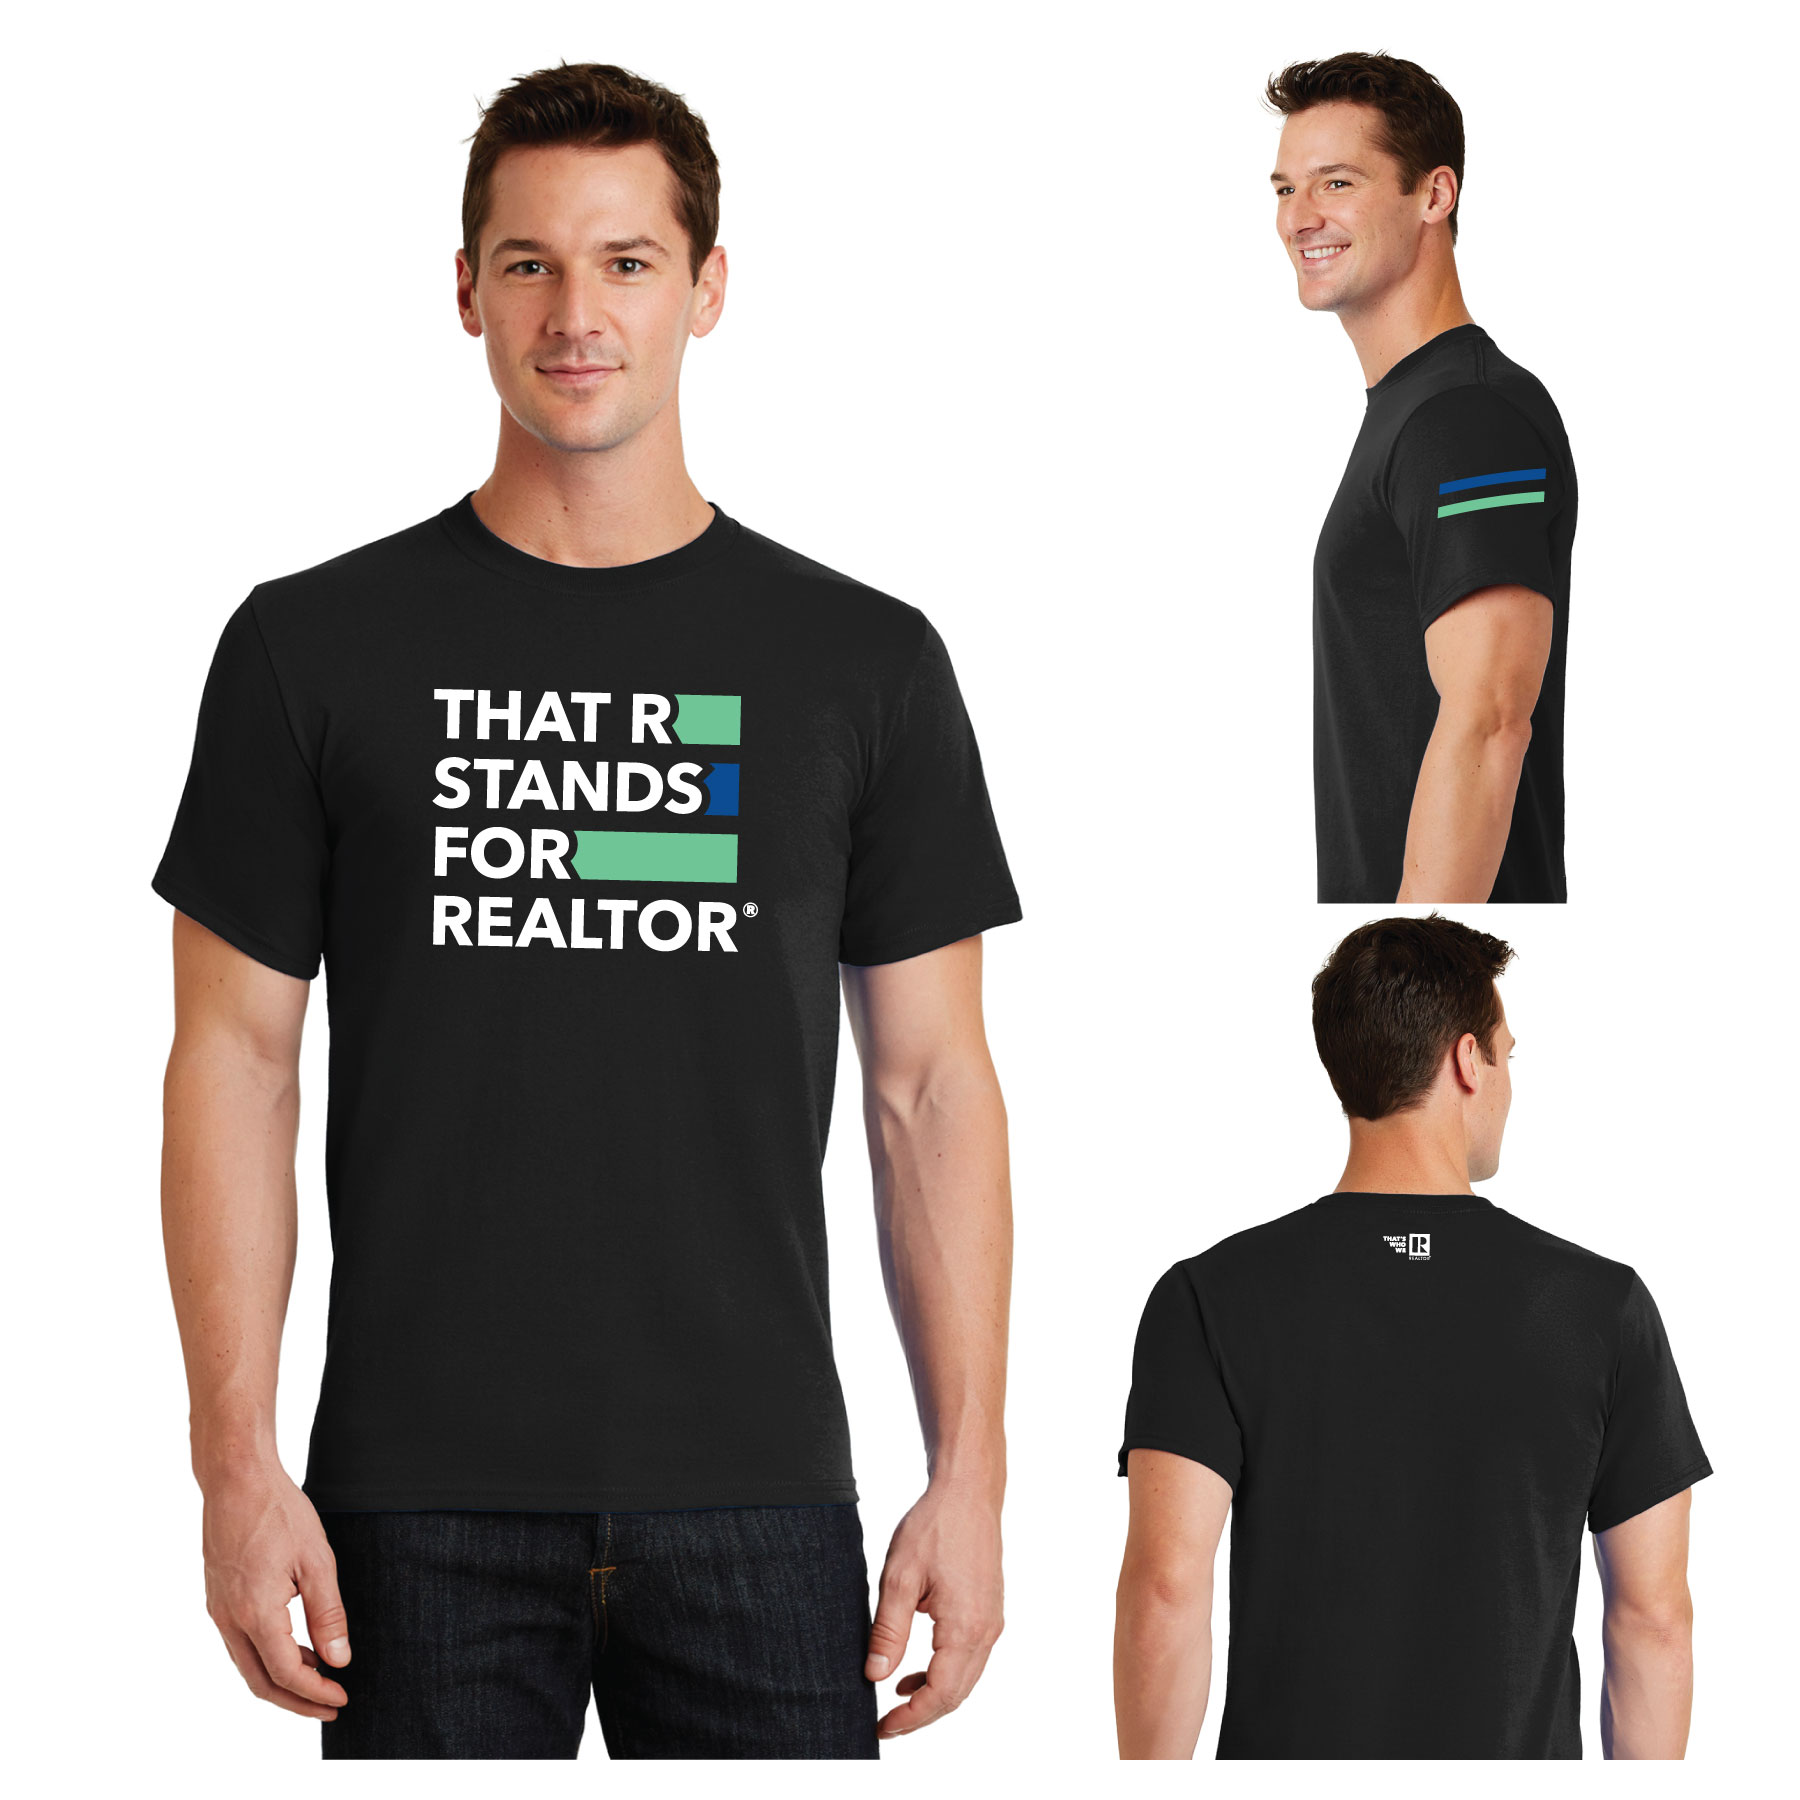 """That R Stands for REALTOR®"" Value Tee Shirt TRSFR,twwr,ThatsWhoWeR,Thats,TWWR,ThatWho,ThatsWho,Twwr,Thats,Whos,We,Ares,Tees,T-shirt,Tee,Casual,Values,Tees,NewEra,Longs,Sleeves"